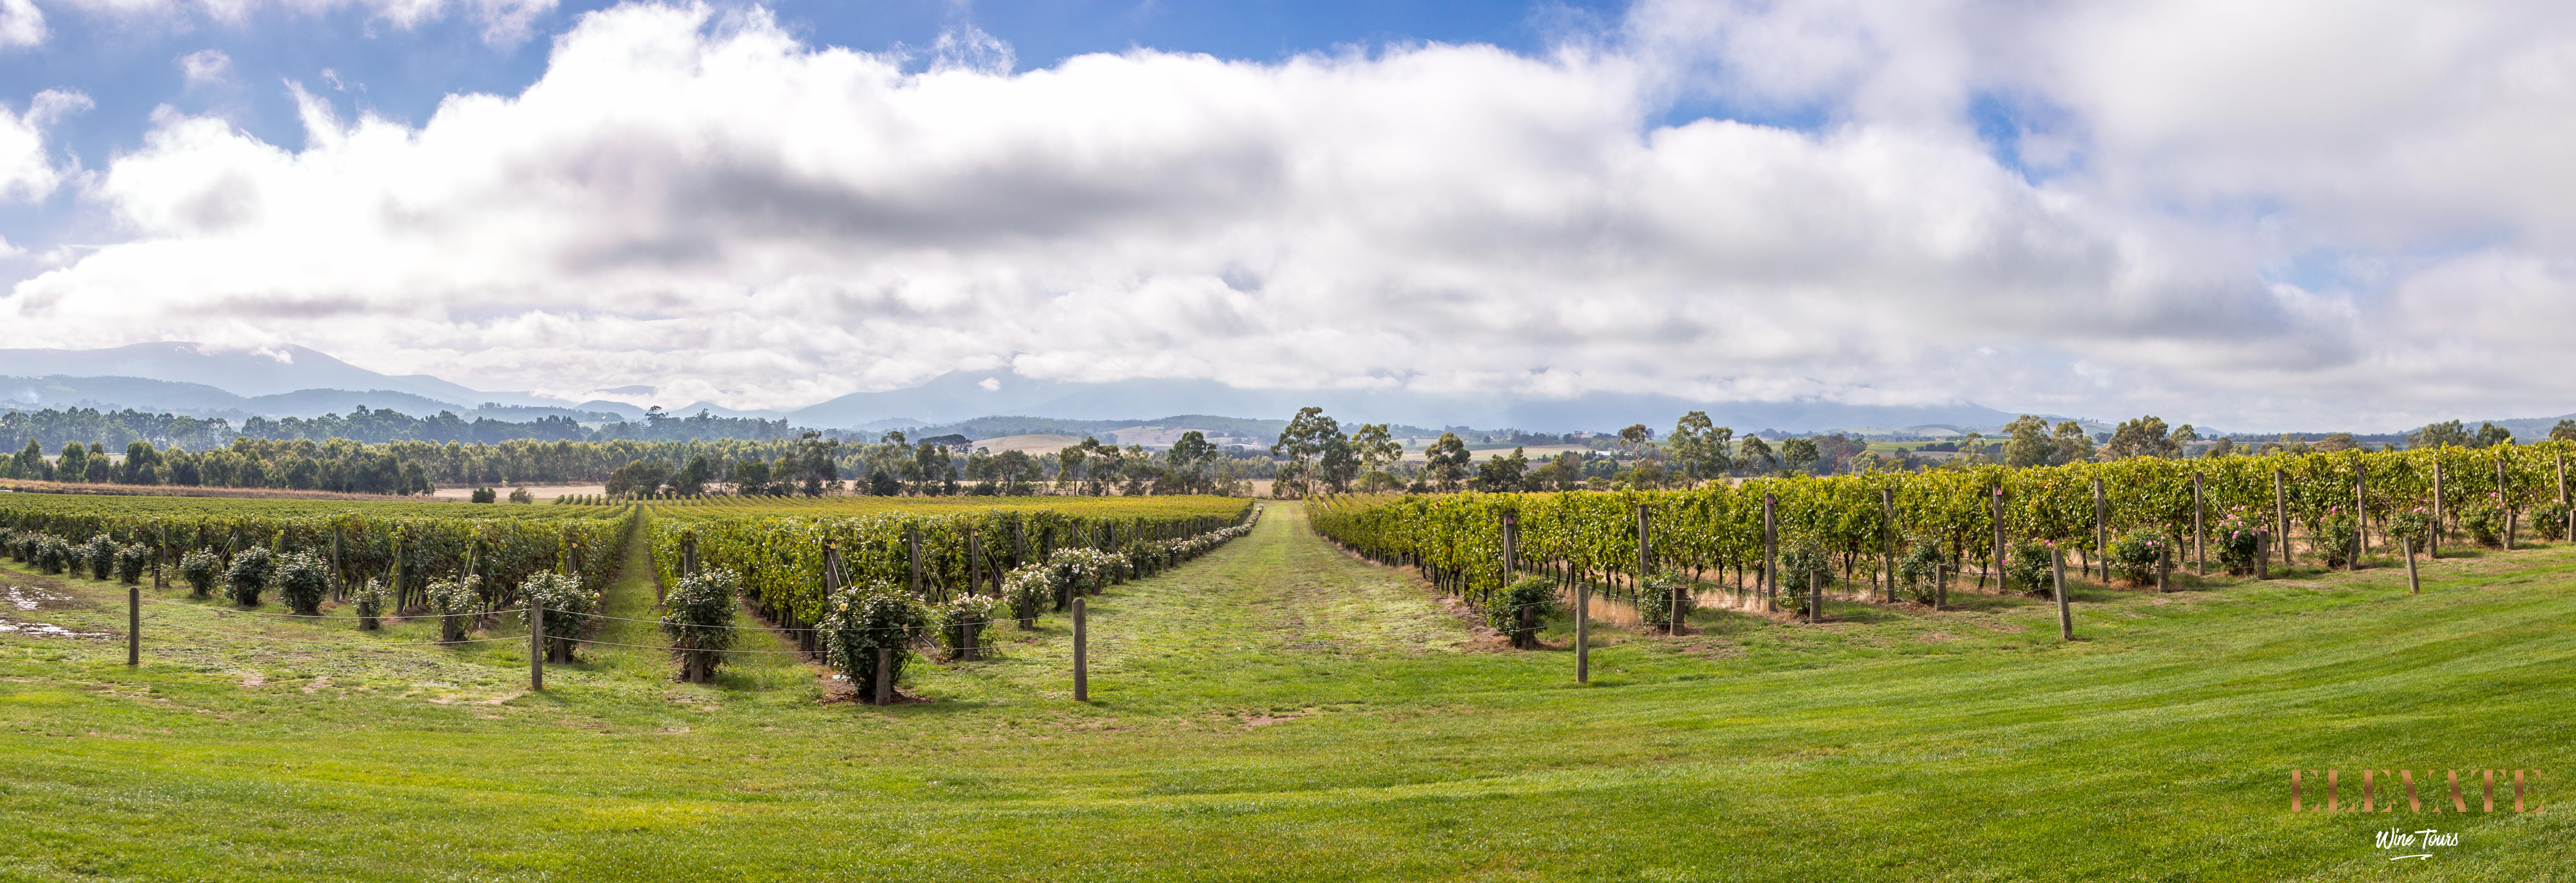 Panoramic view of the vines at Domaine Chandon, Yarra Valley.